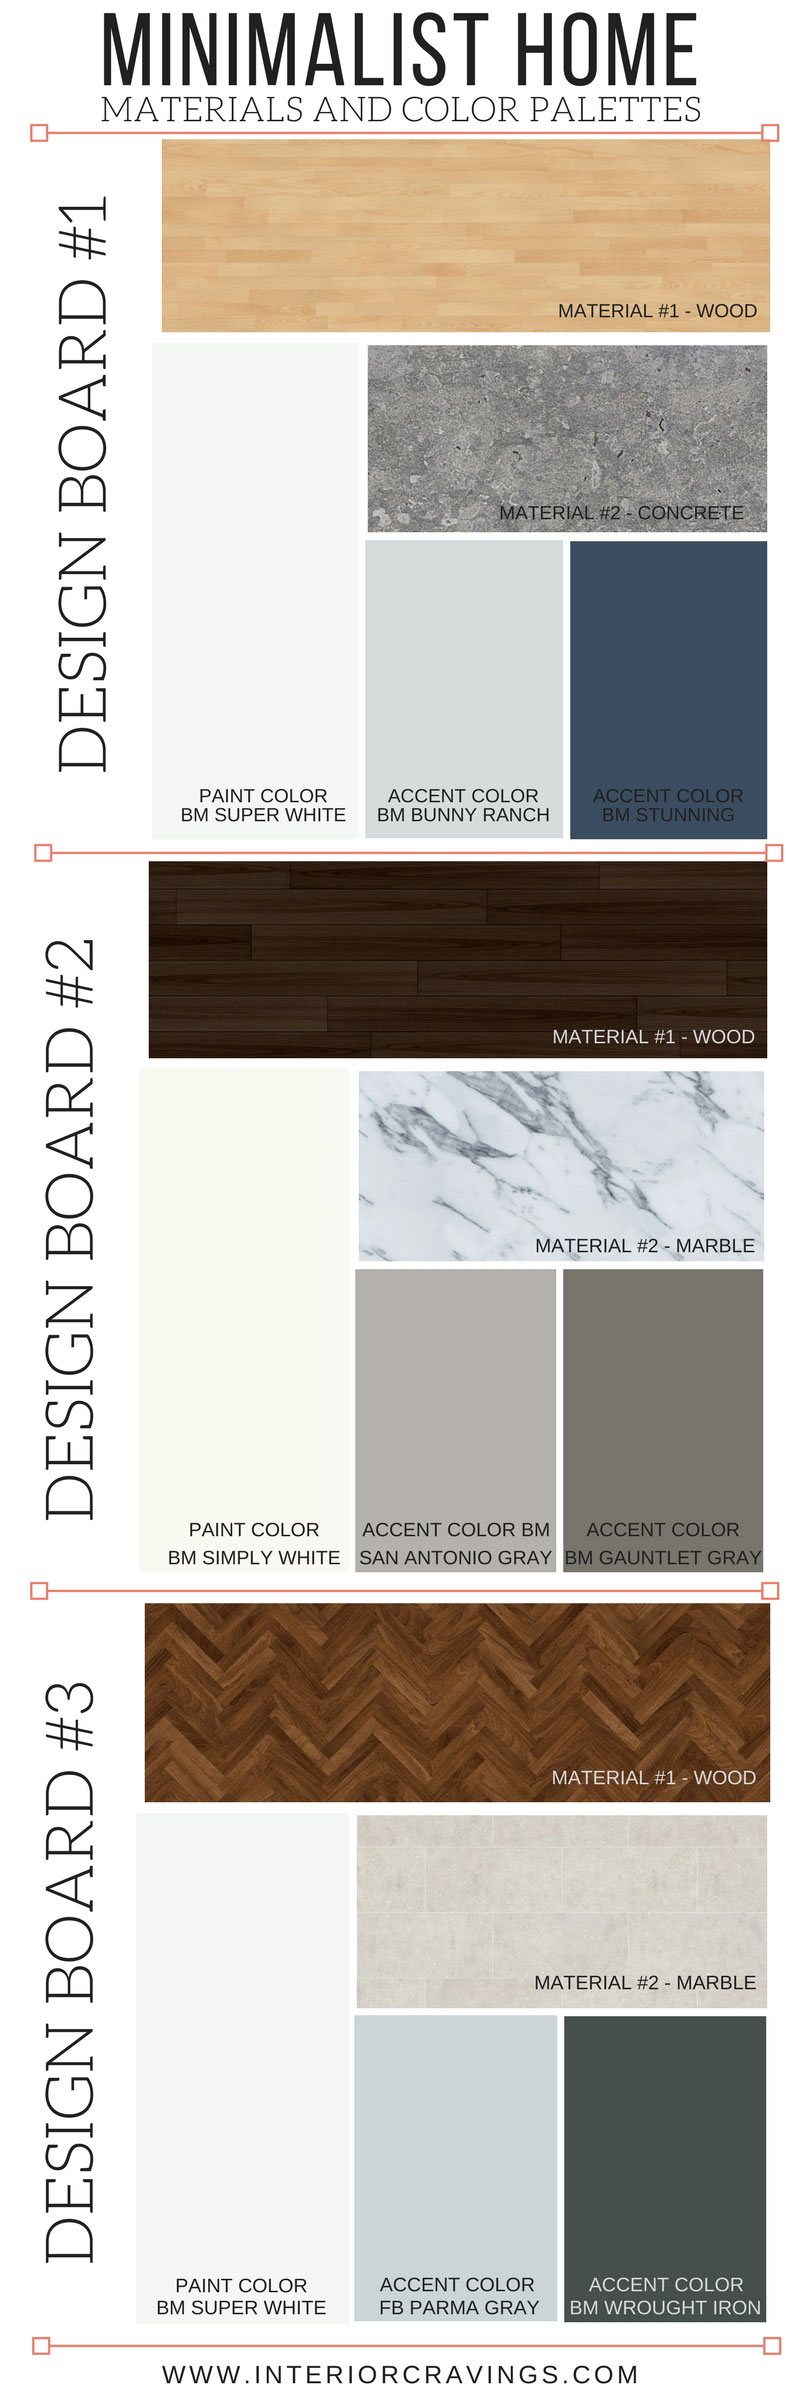 MINIMALIST HOME ESSENTIALS: MATERIALS AND COLOR PALETTE | Interior ...